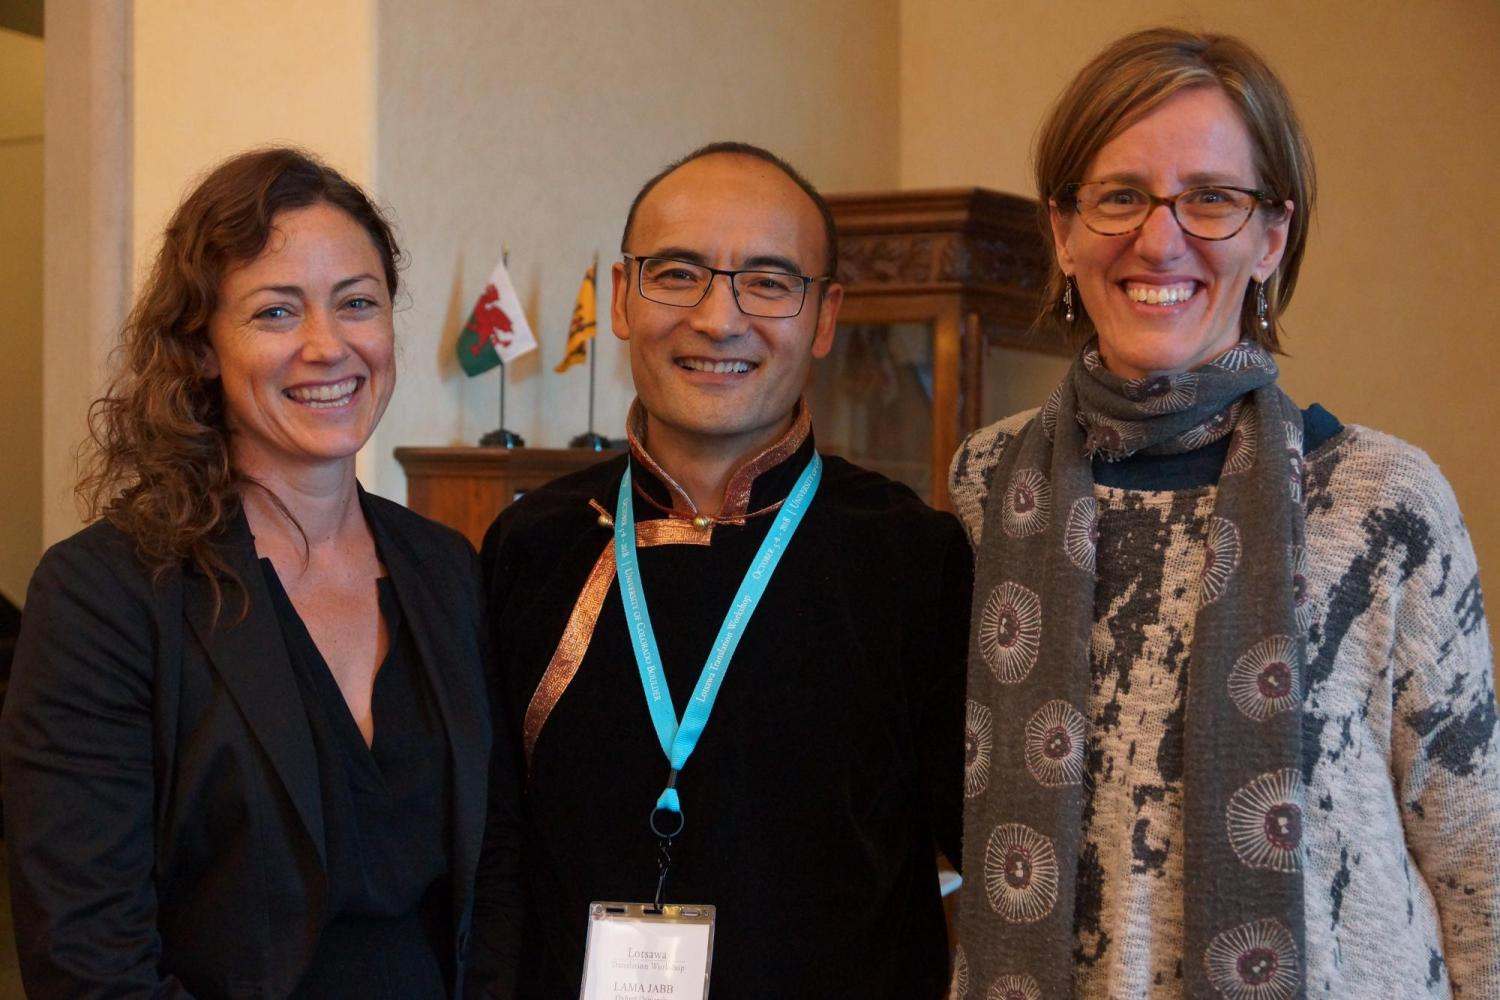 Co-organizers Dominique Townsend and Holly Gayley with Lama Jabb after his Keynote